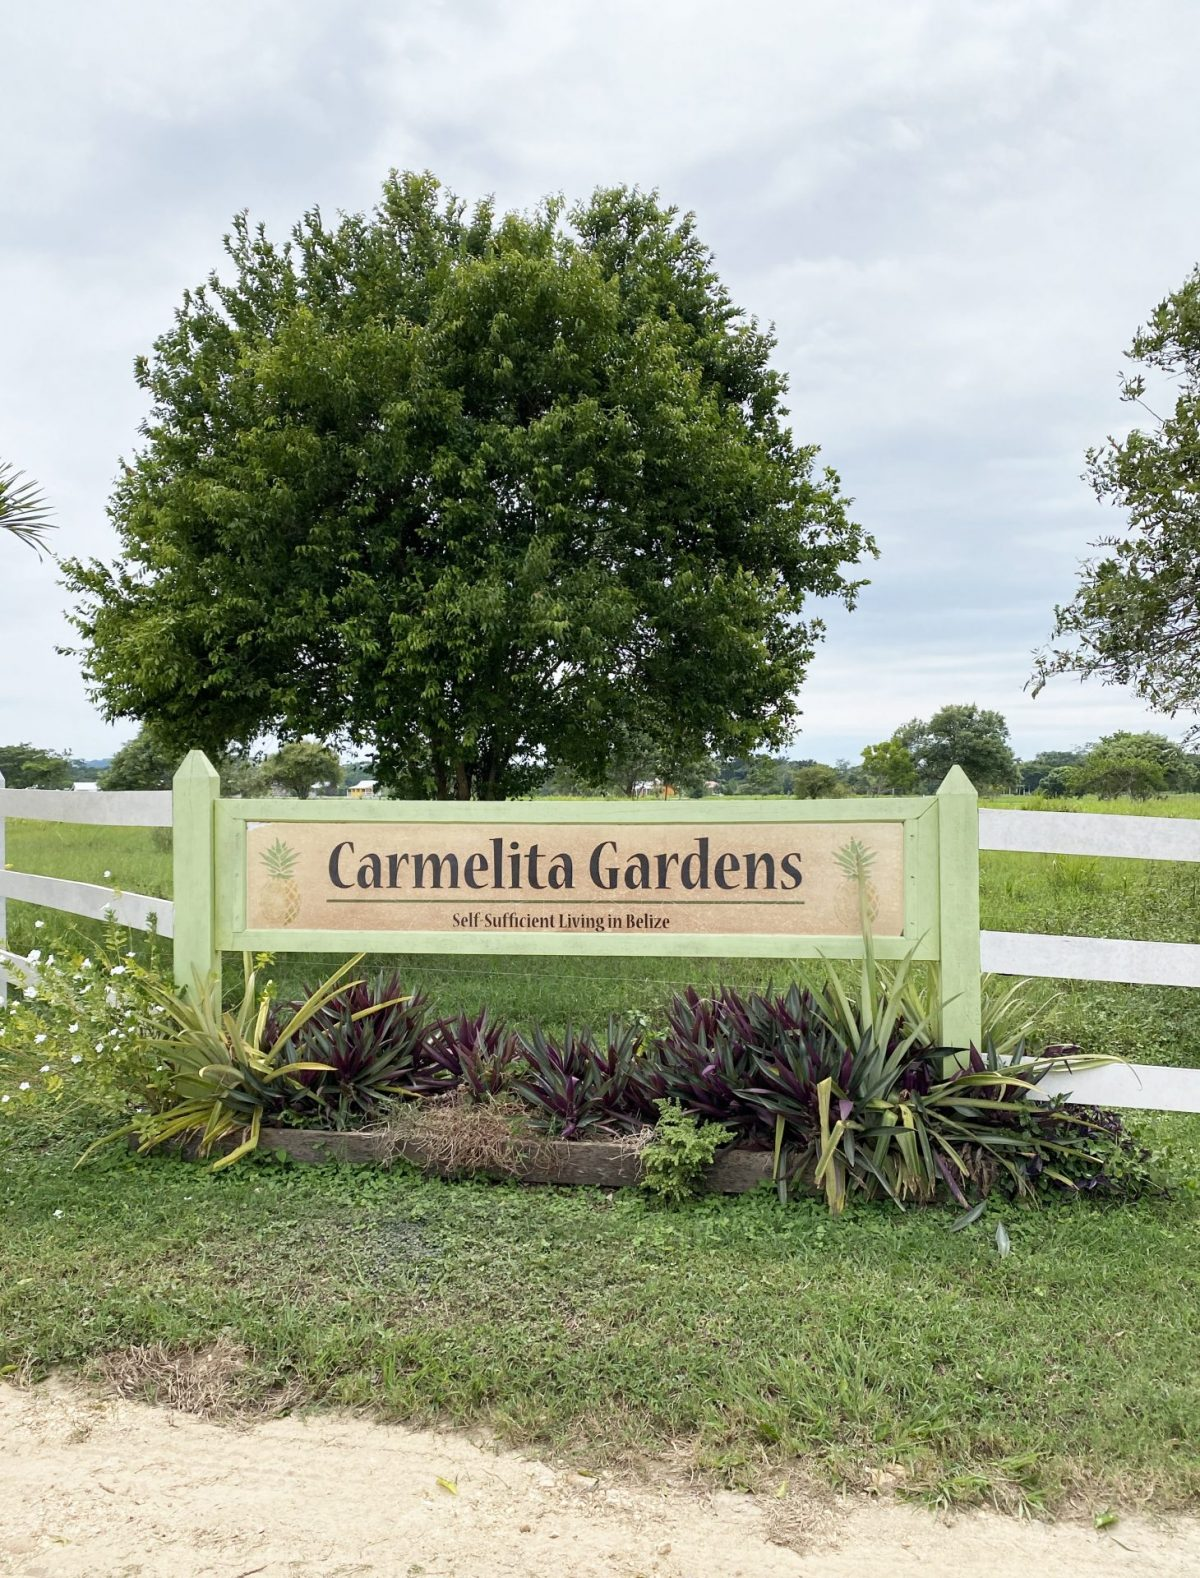 carmelita-gardens-sustainable-living-self-sufficient-belize-cayo sign